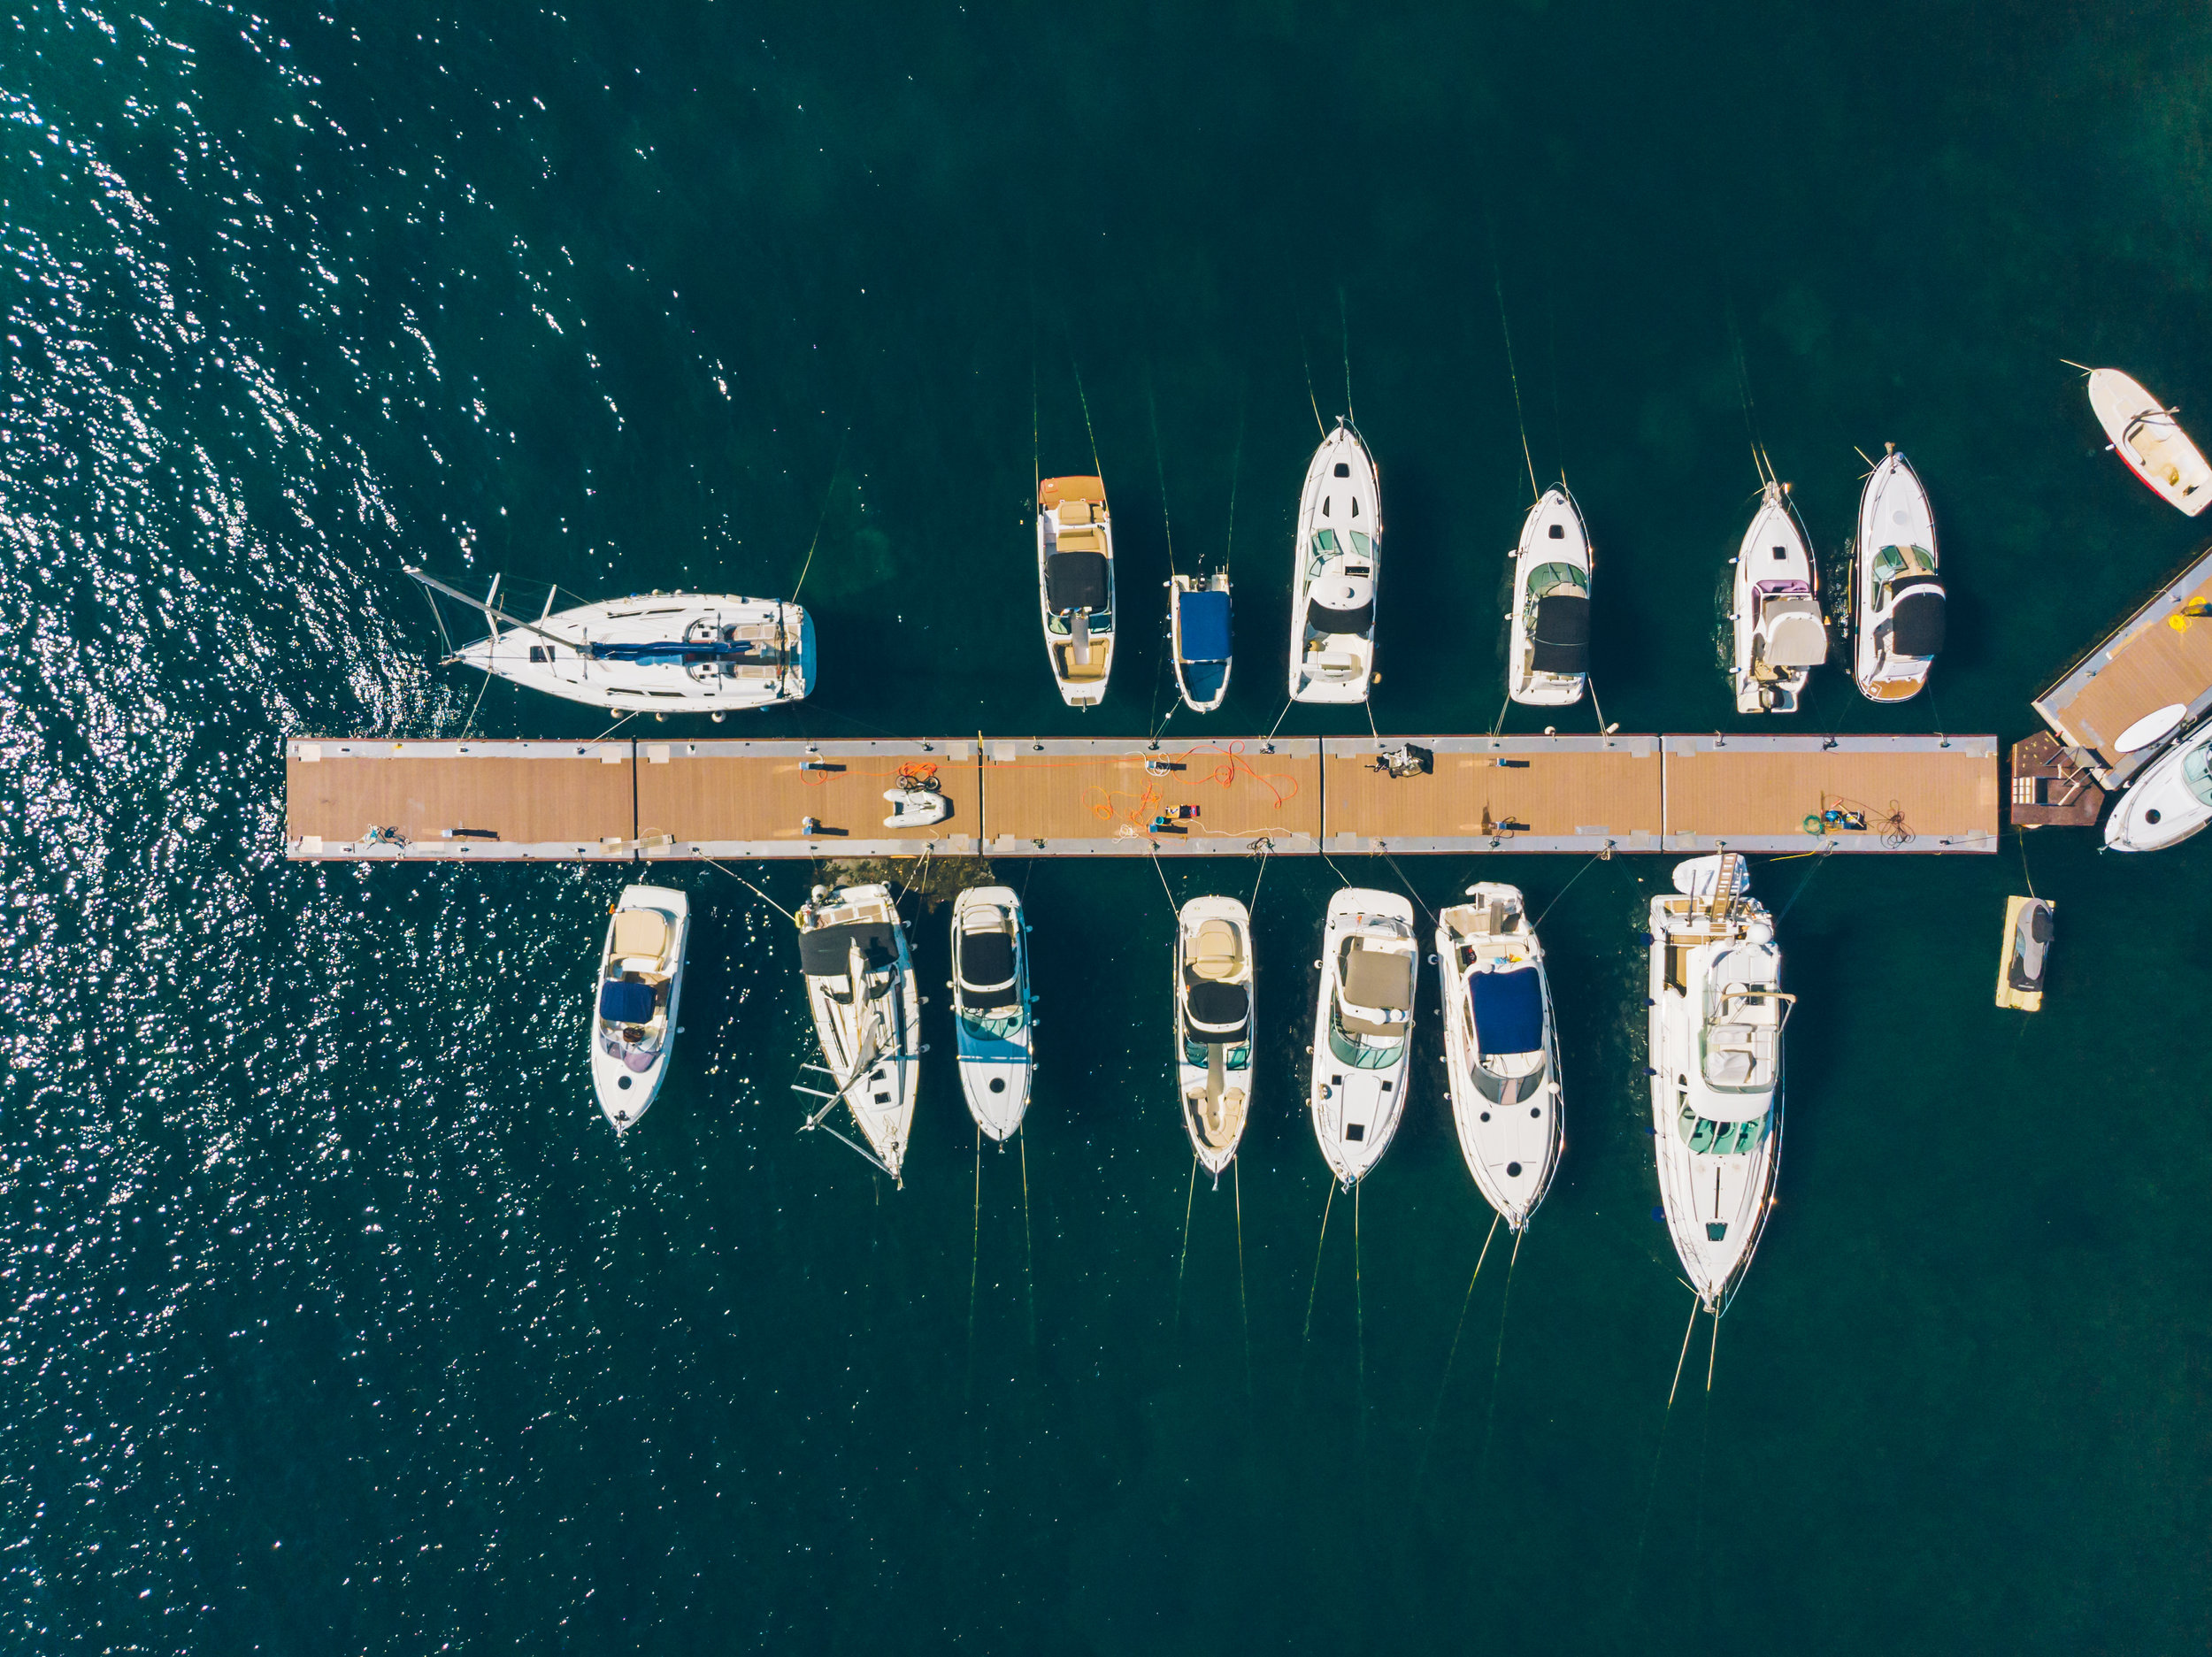 Aerial view looking down onto boats on a dock